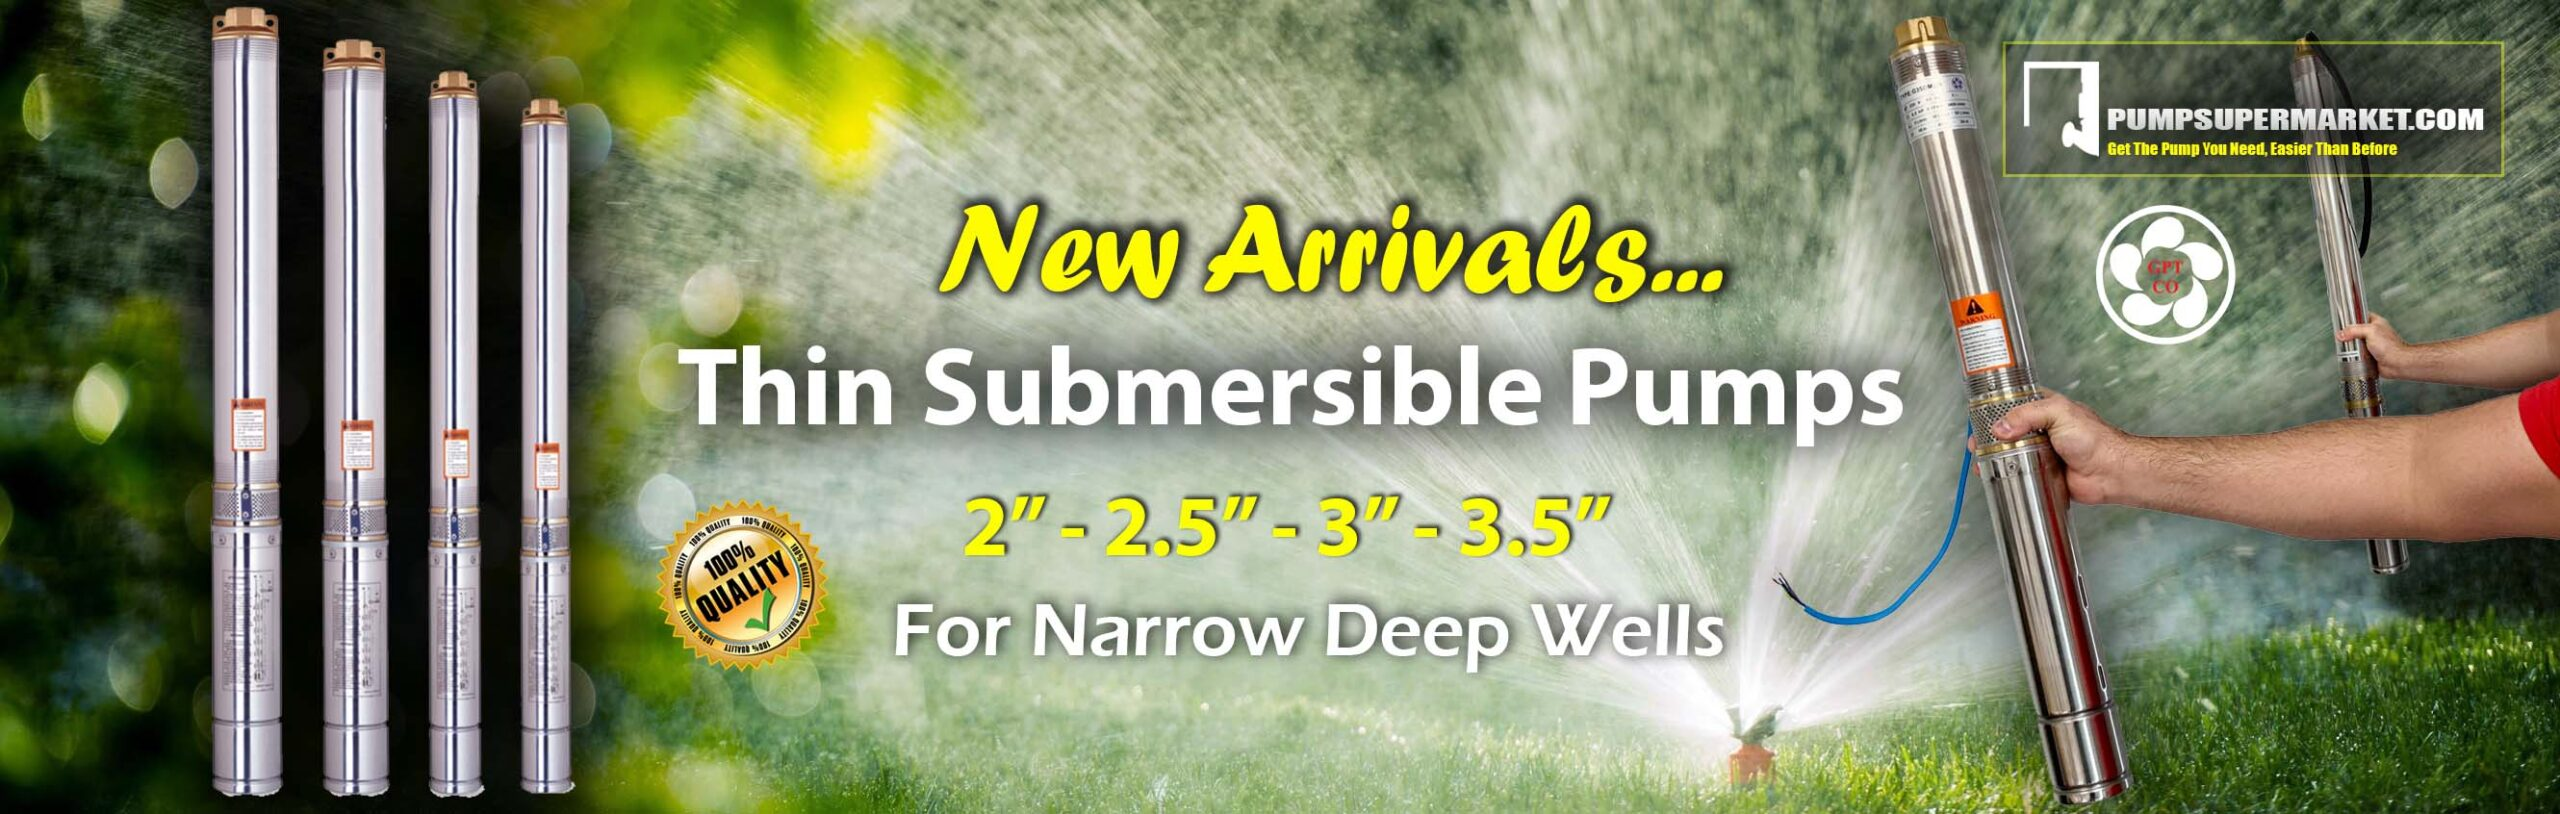 Thin Submersible Pumps